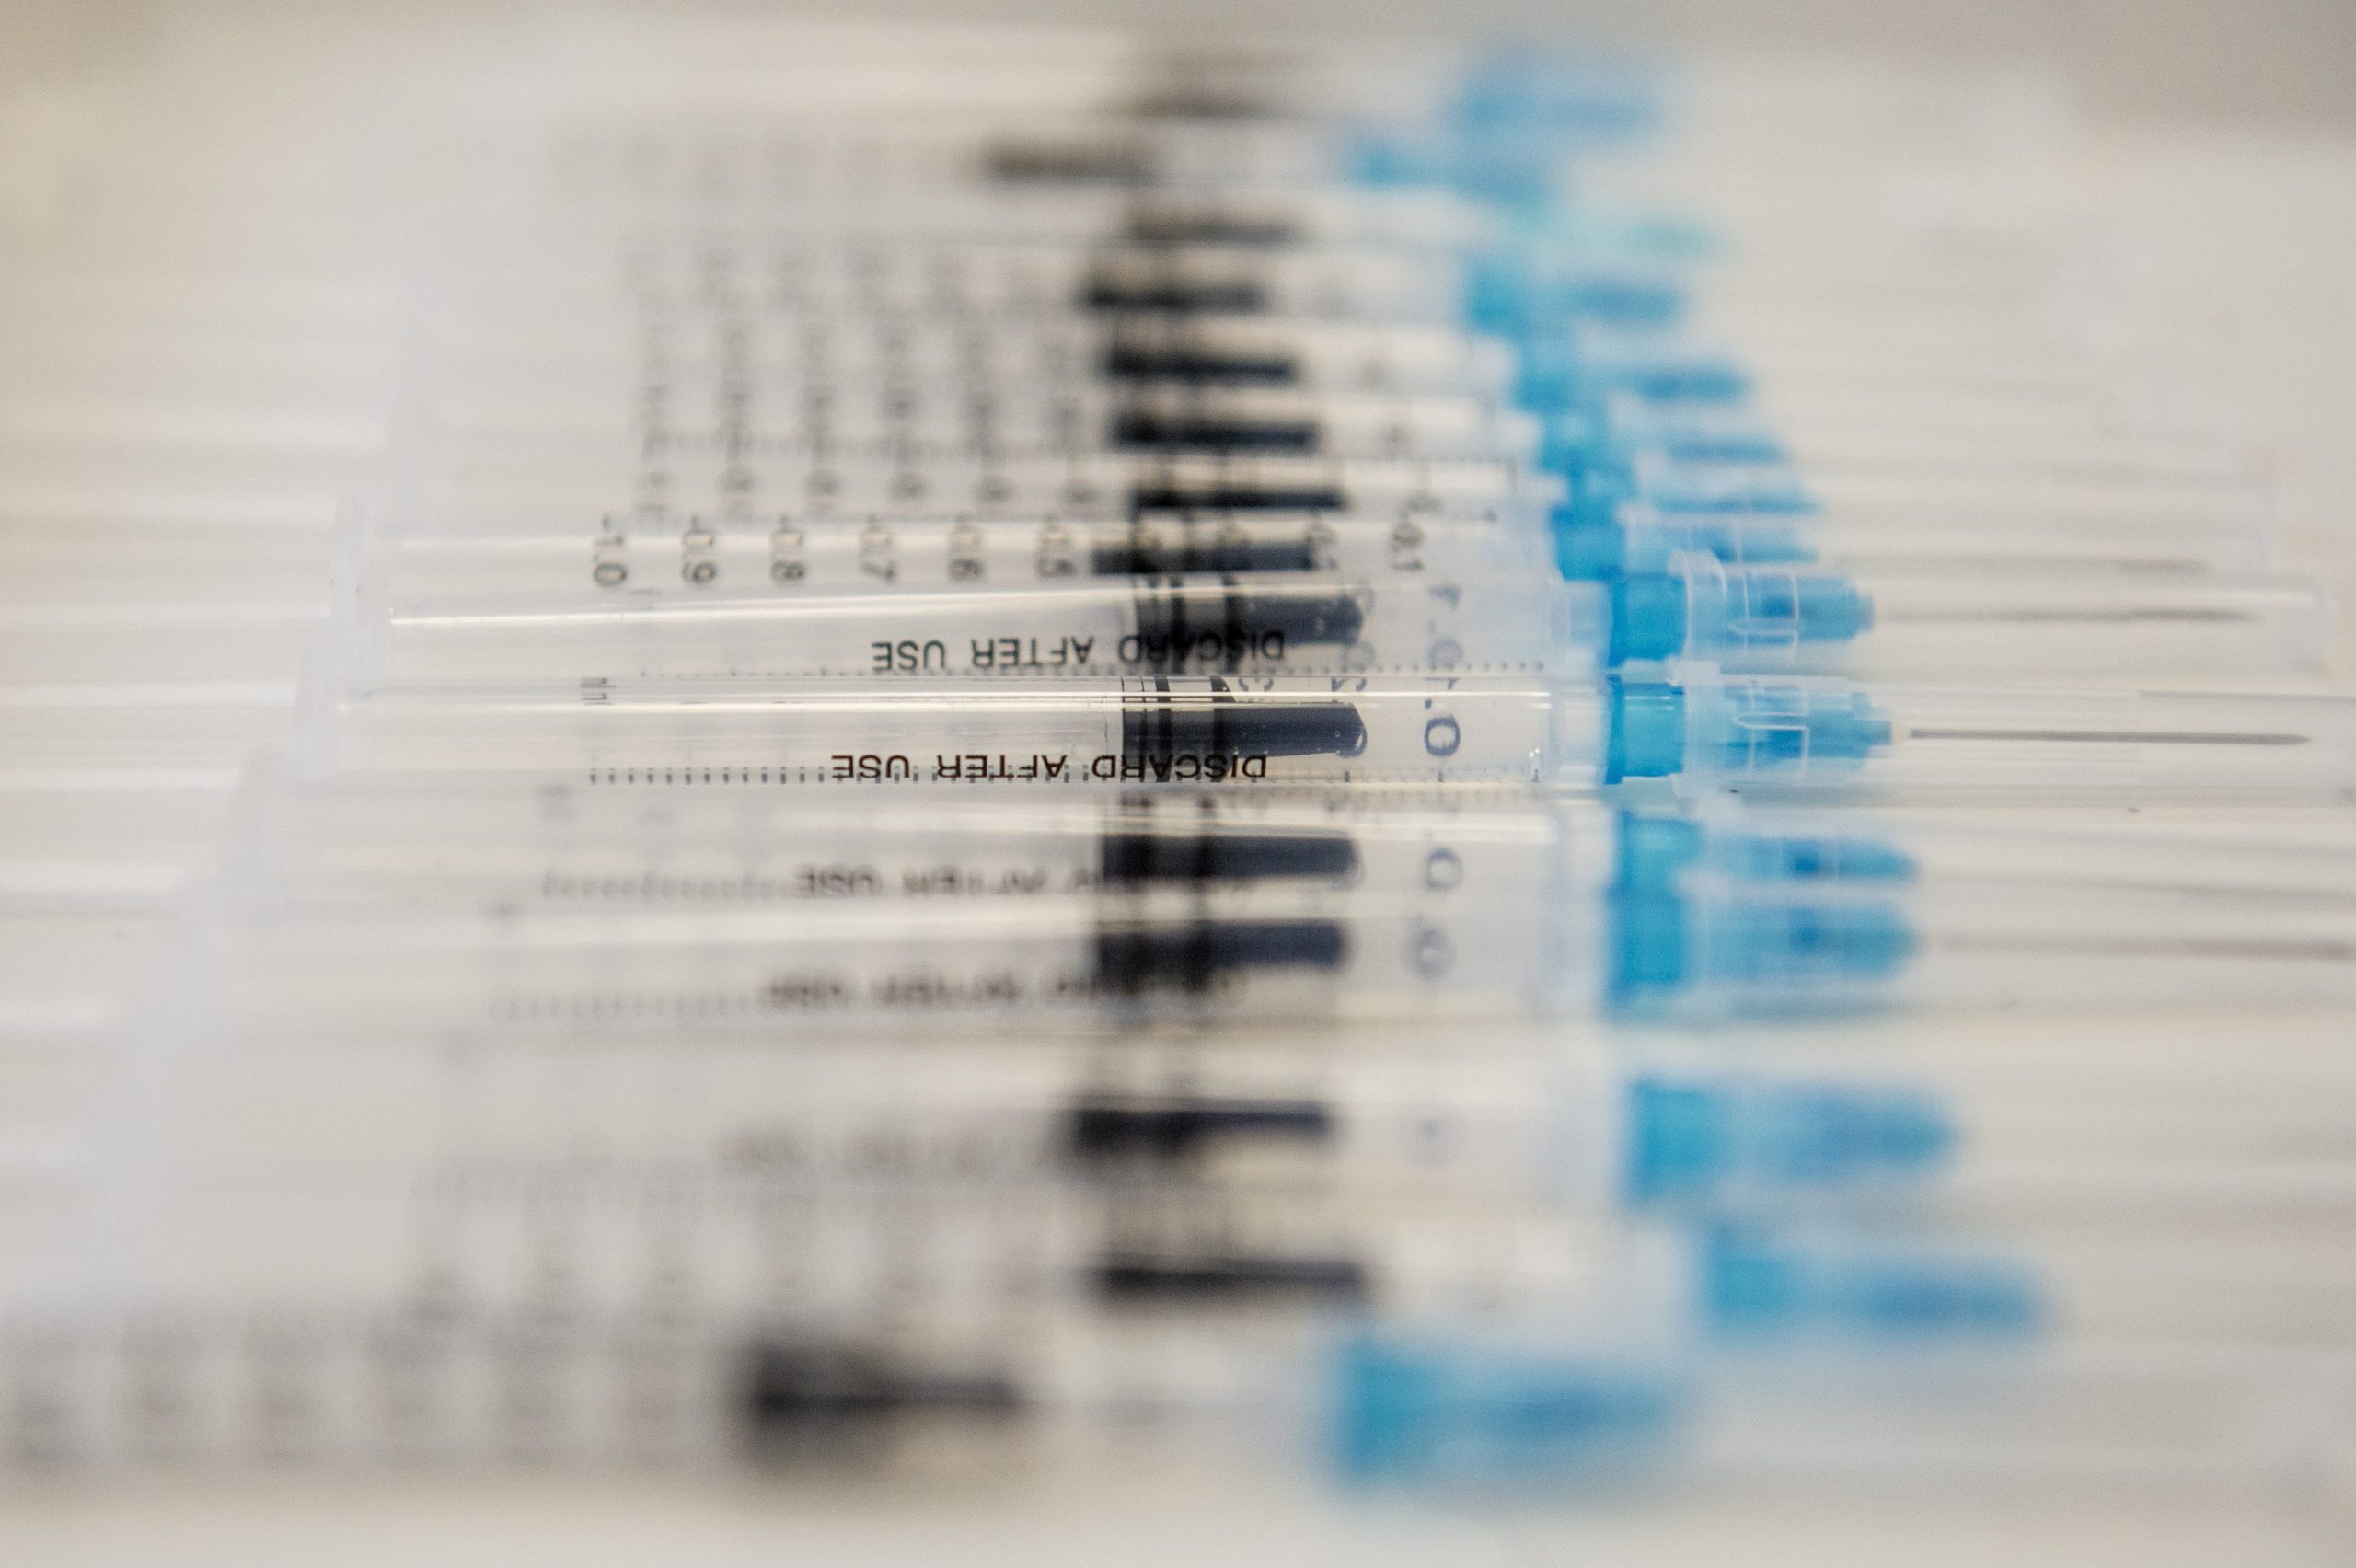 Hungarian Jab to Be Based on Inactivated Virus Technology, Chief Medical Officer Said